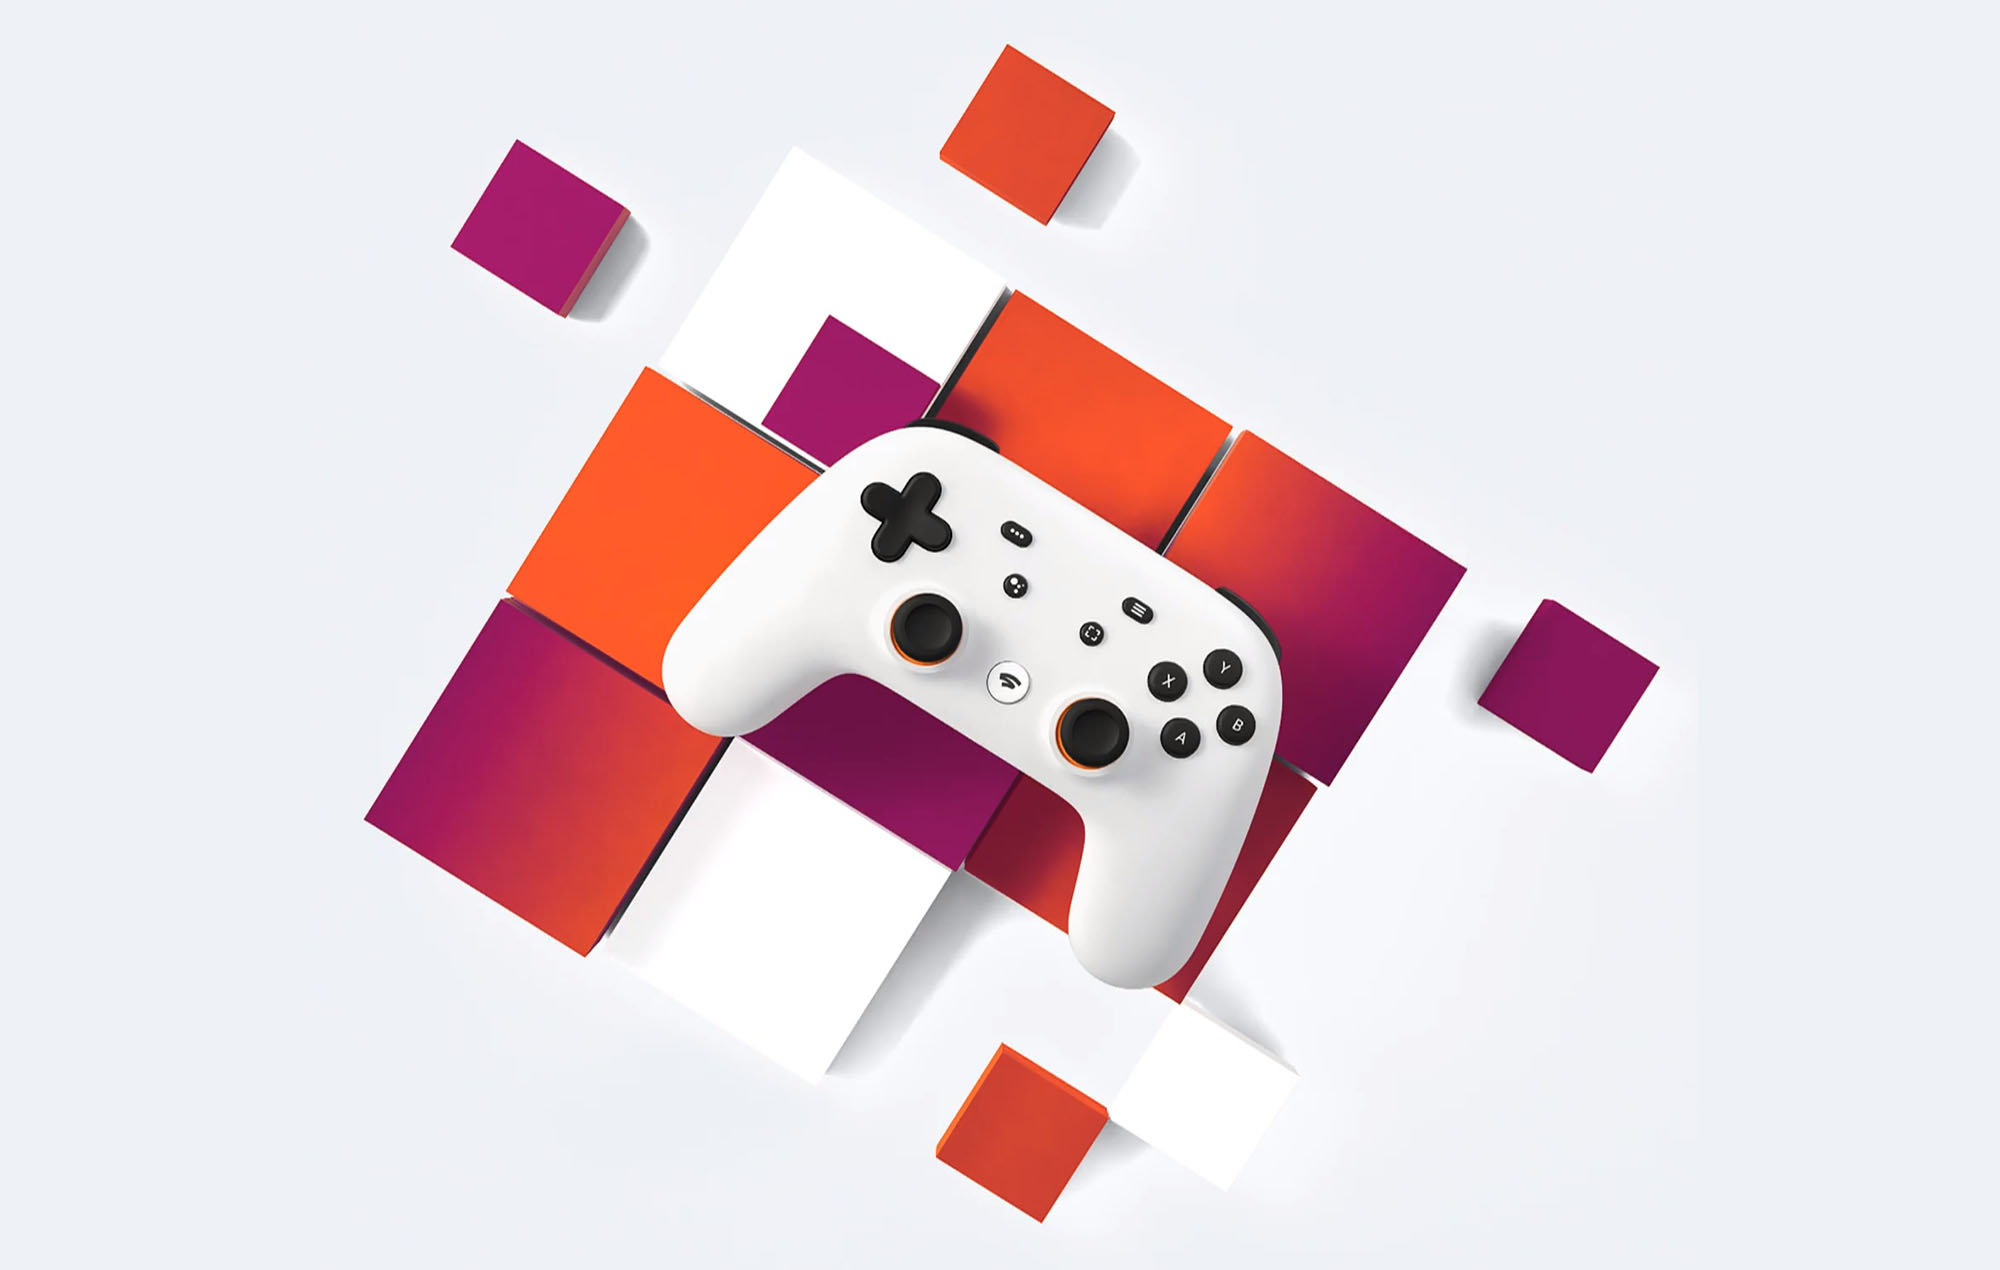 Over 400 games are in the works for Google Stadia - NME